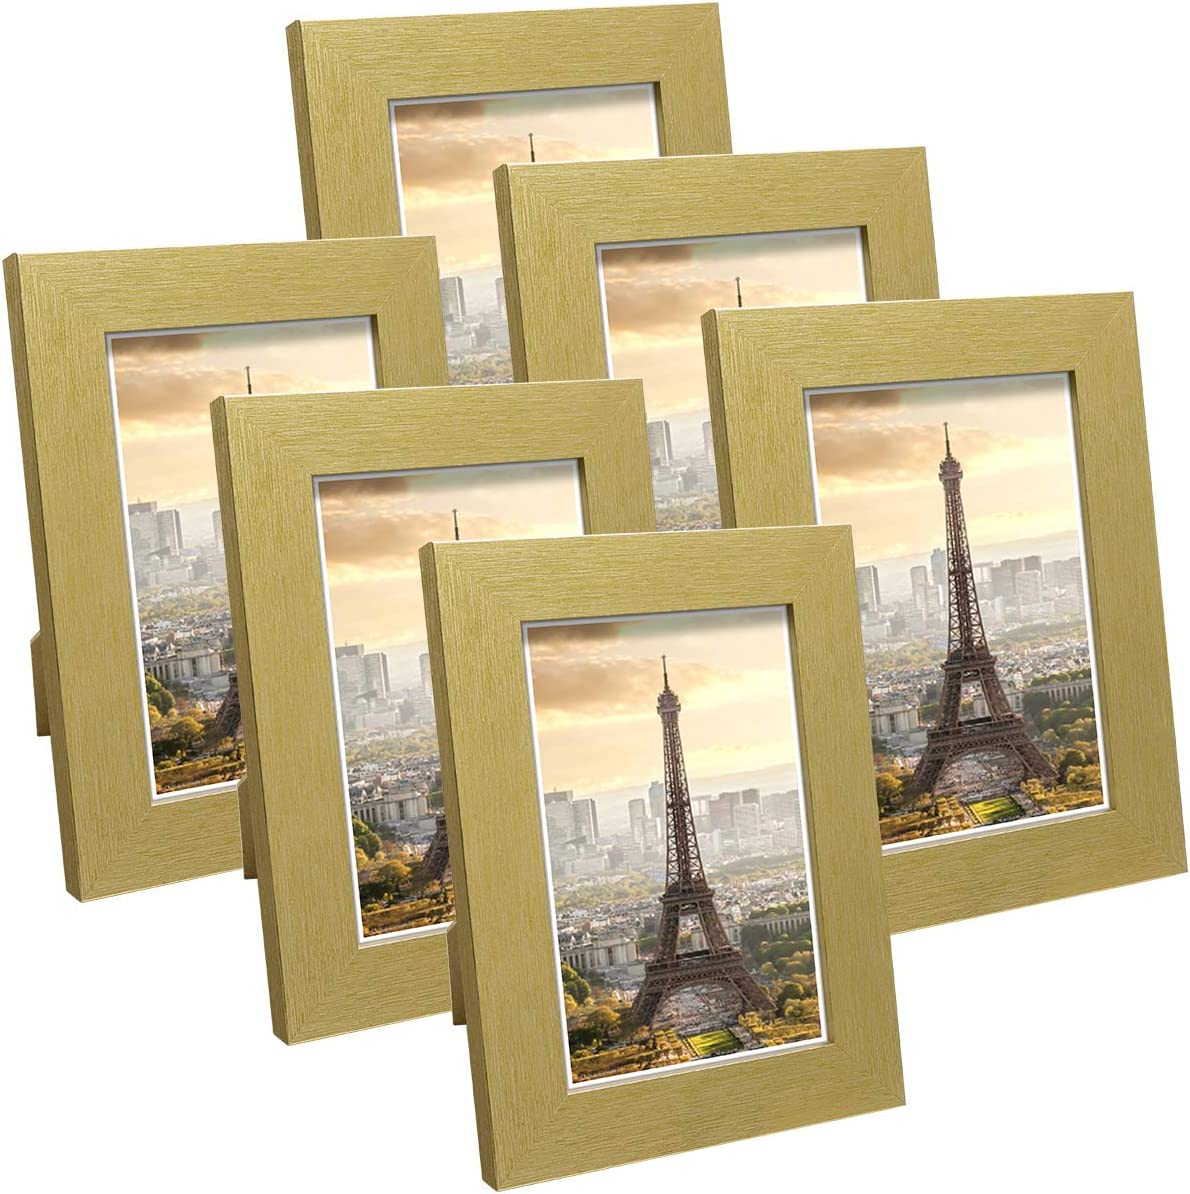 Q.Hou 4x6 Picture Frame Wood Pattern Gold Photo Frames Packs 4 with High Definition Glass for Tabletop or Wall Decor(QH-PF4X6-GD)